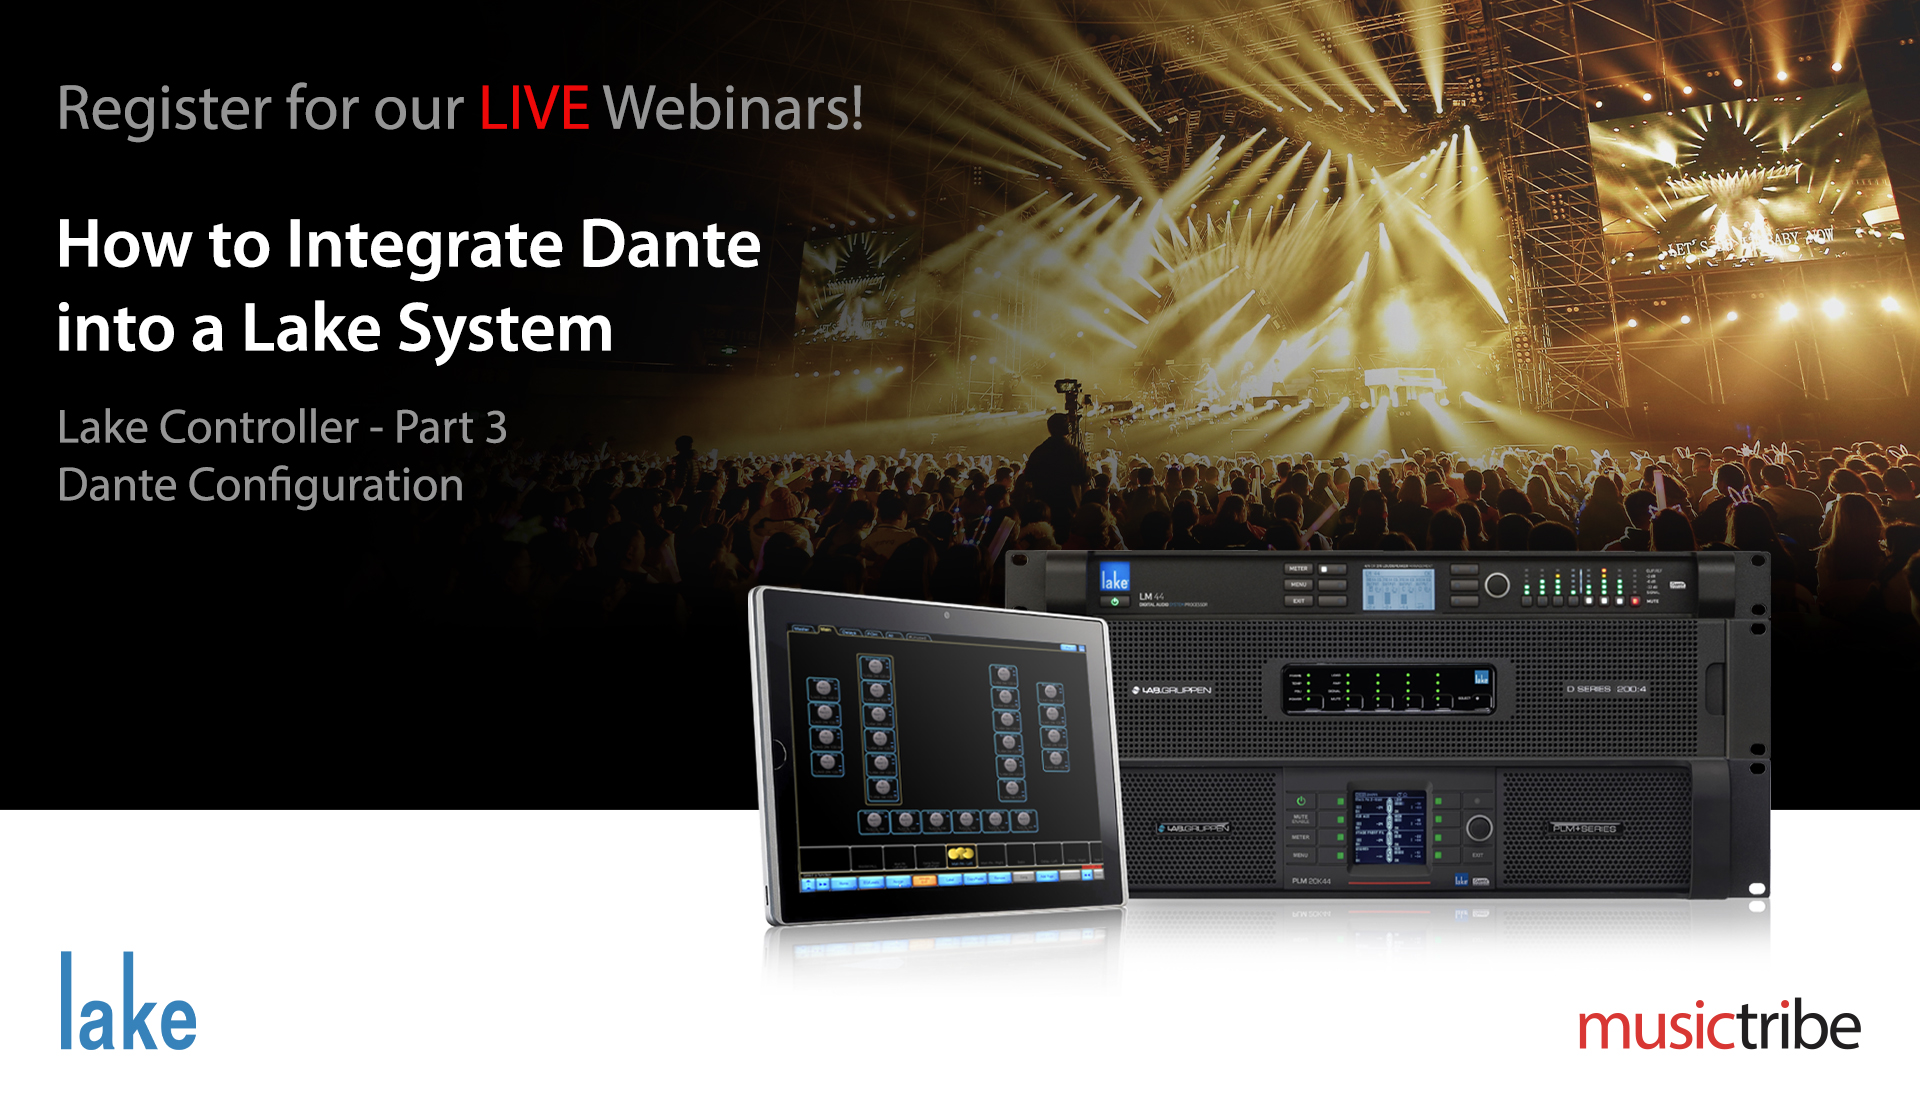 Lake LIVE Webinar: How to Integrate Dante into a Lake System (Part 3)